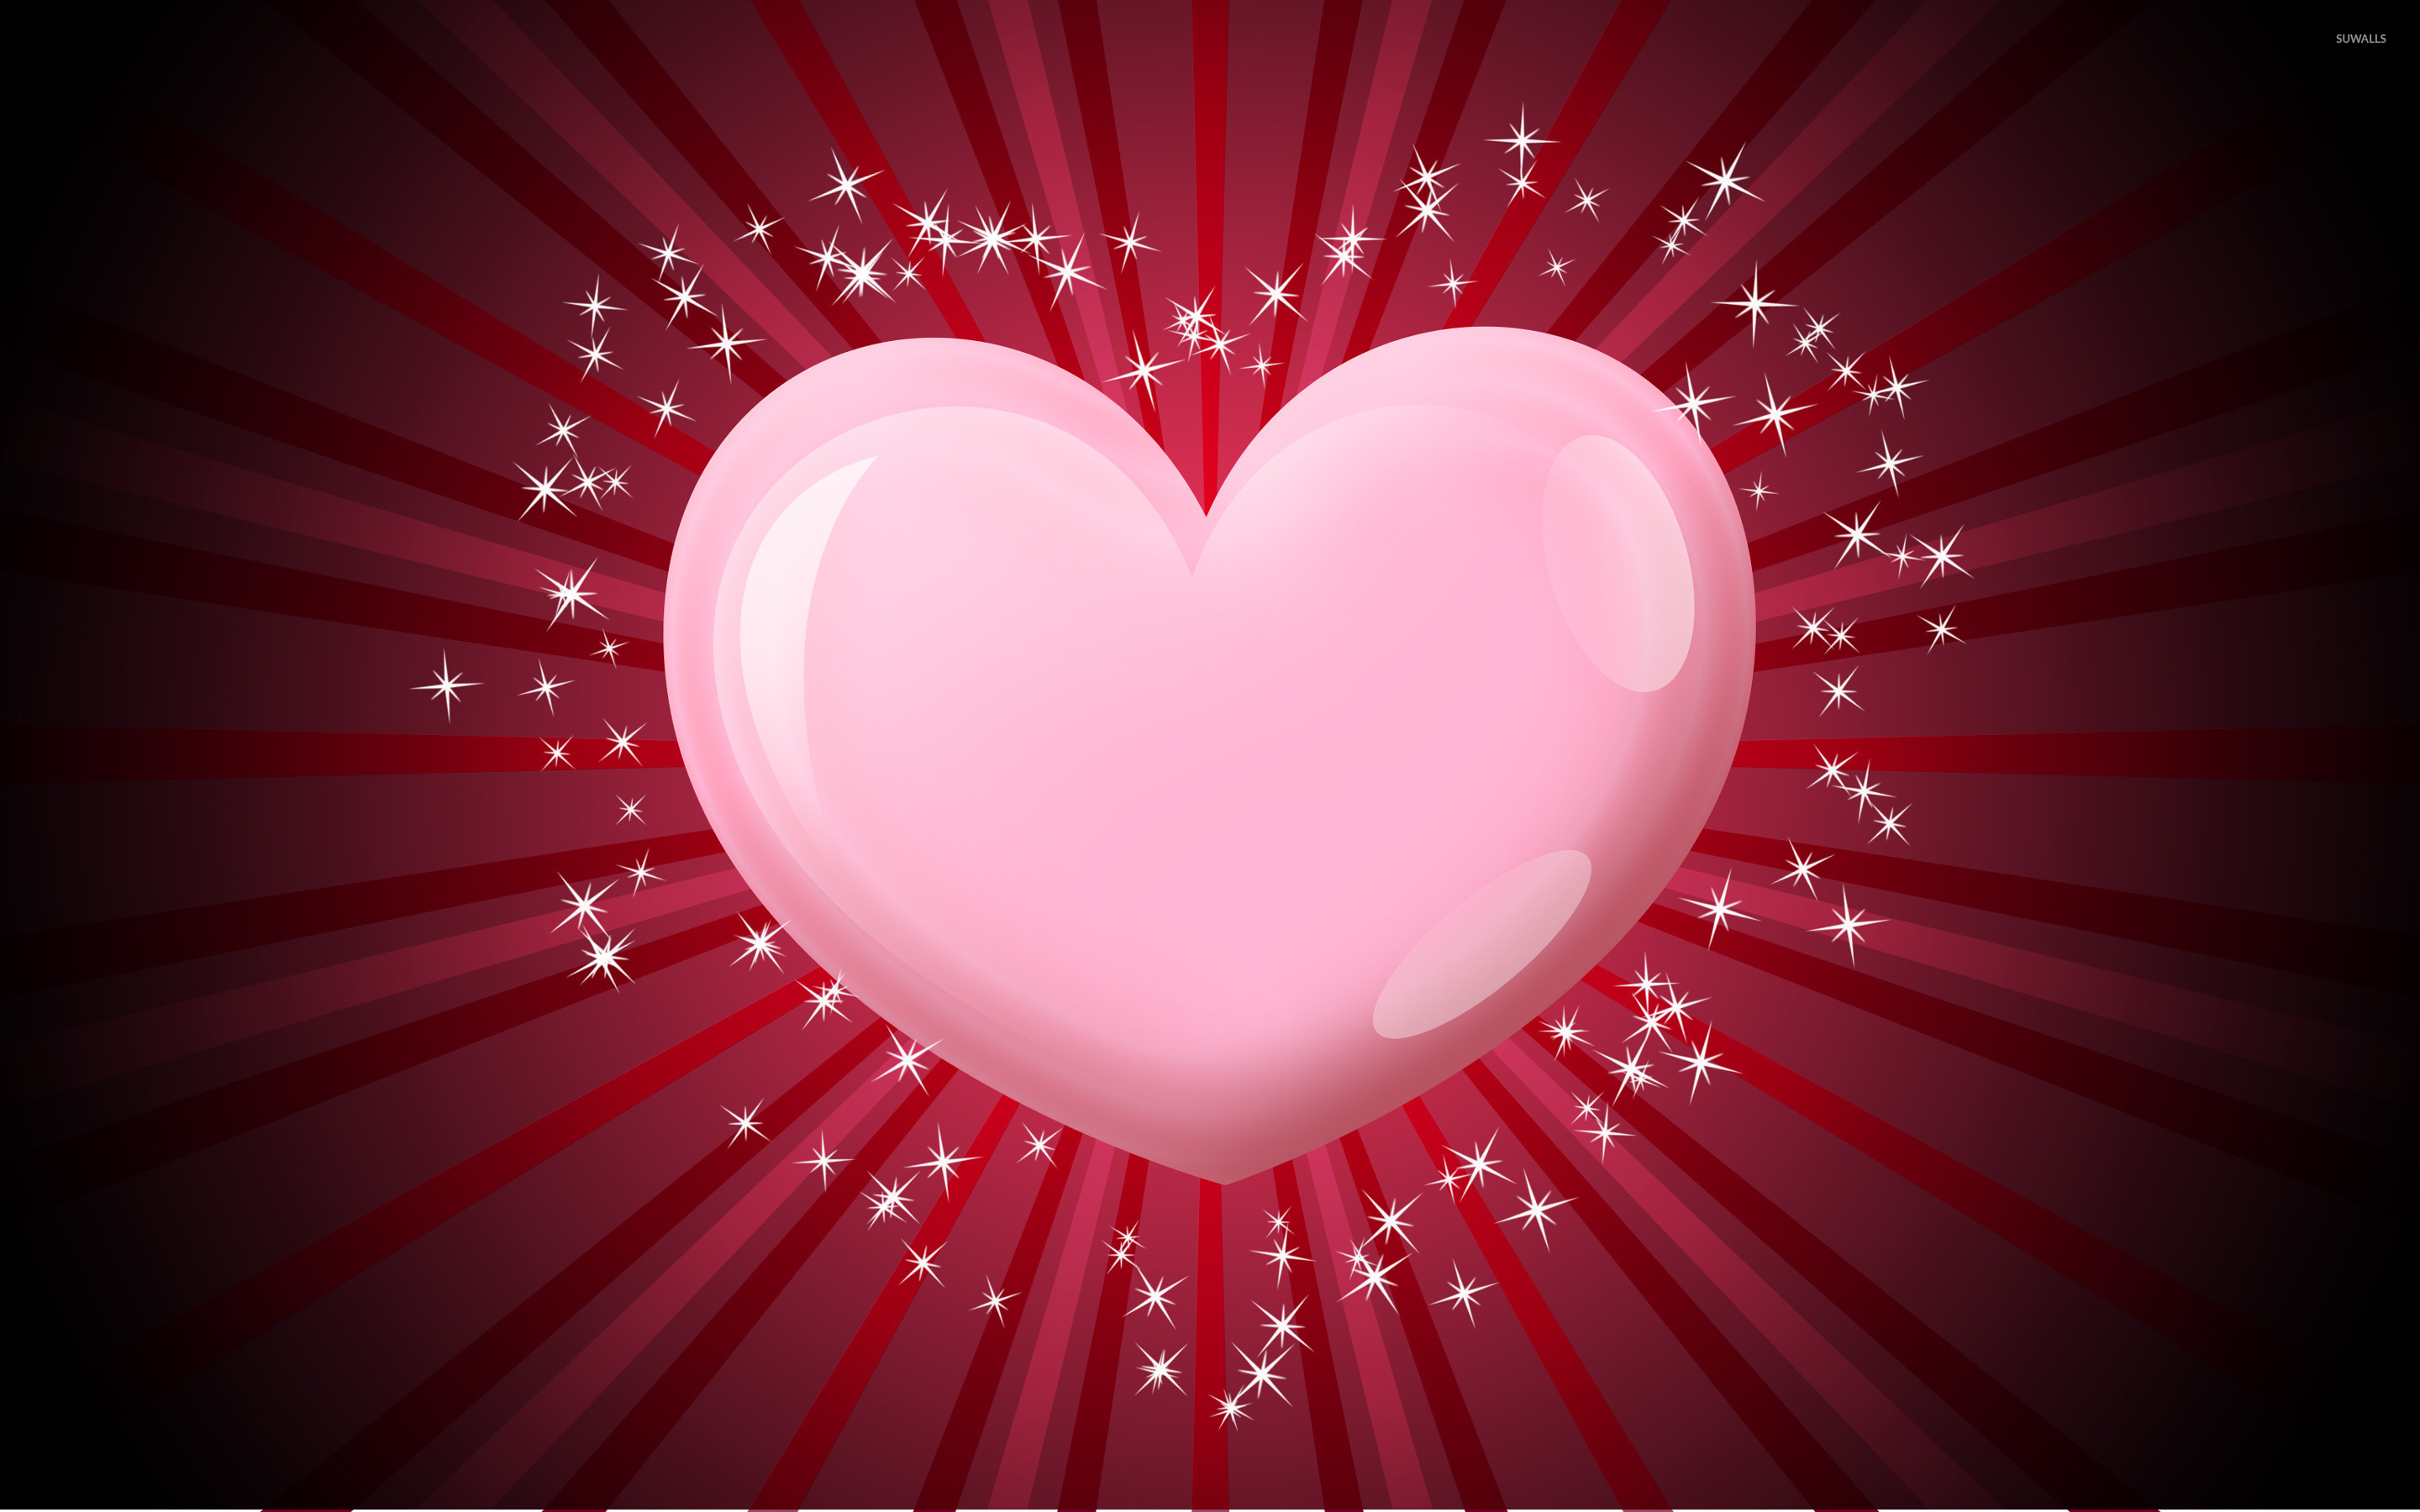 Pink Heart 2 Wallpaper Holiday Wallpapers 38794